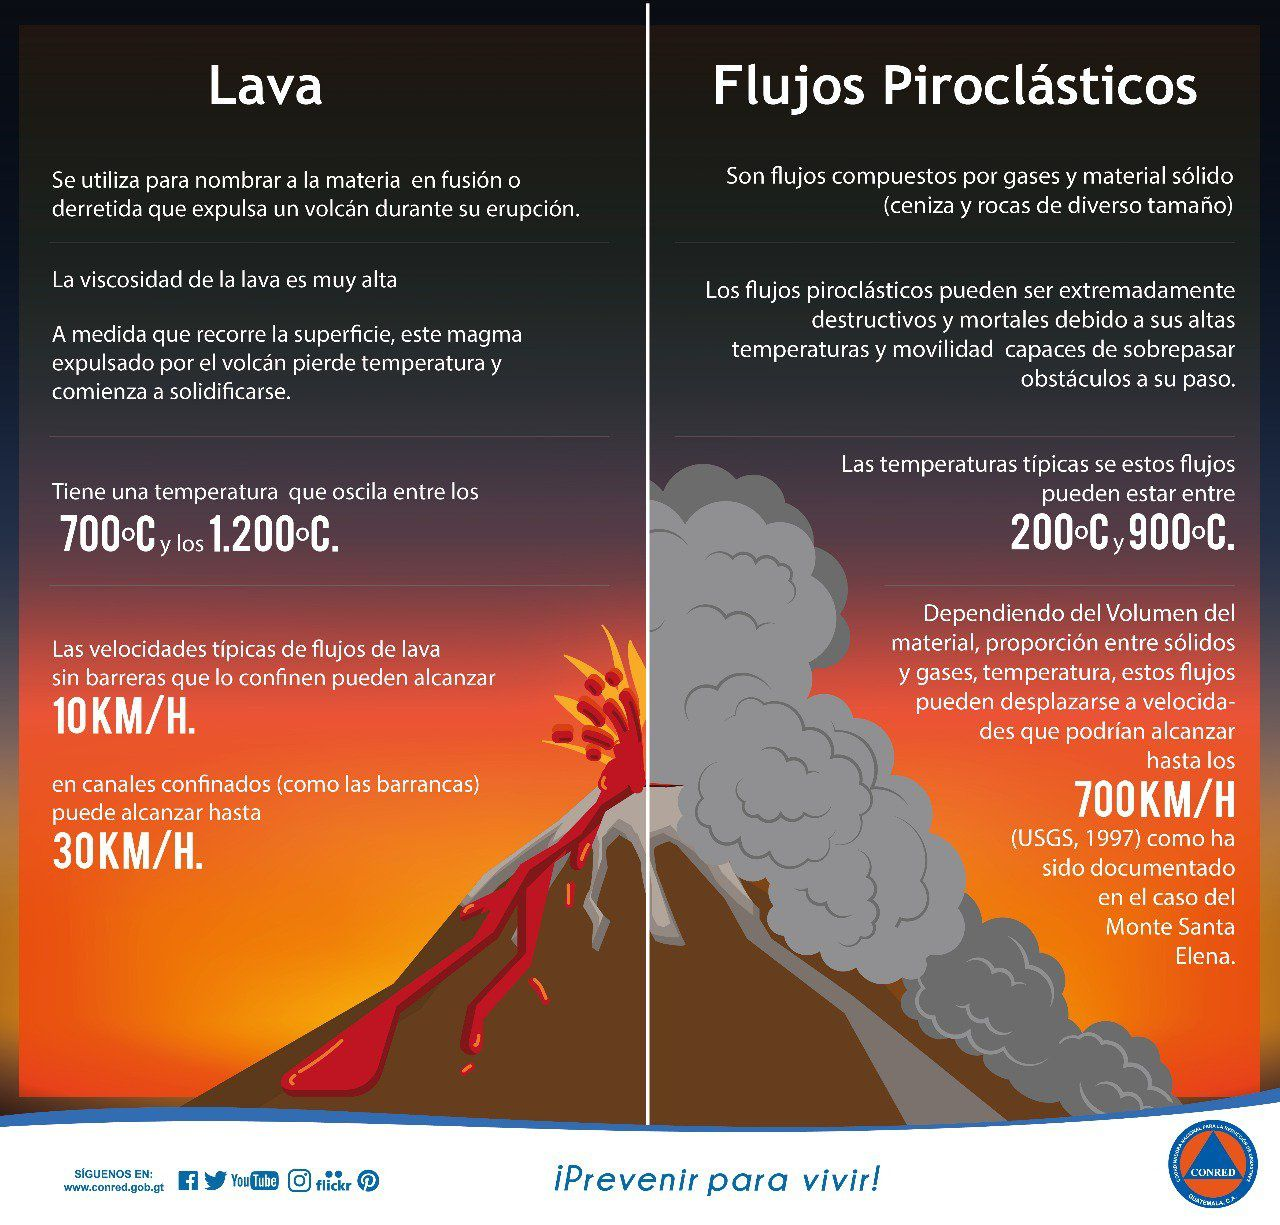 Differences between lava flows and pyroclastic flows - Doc. Conred